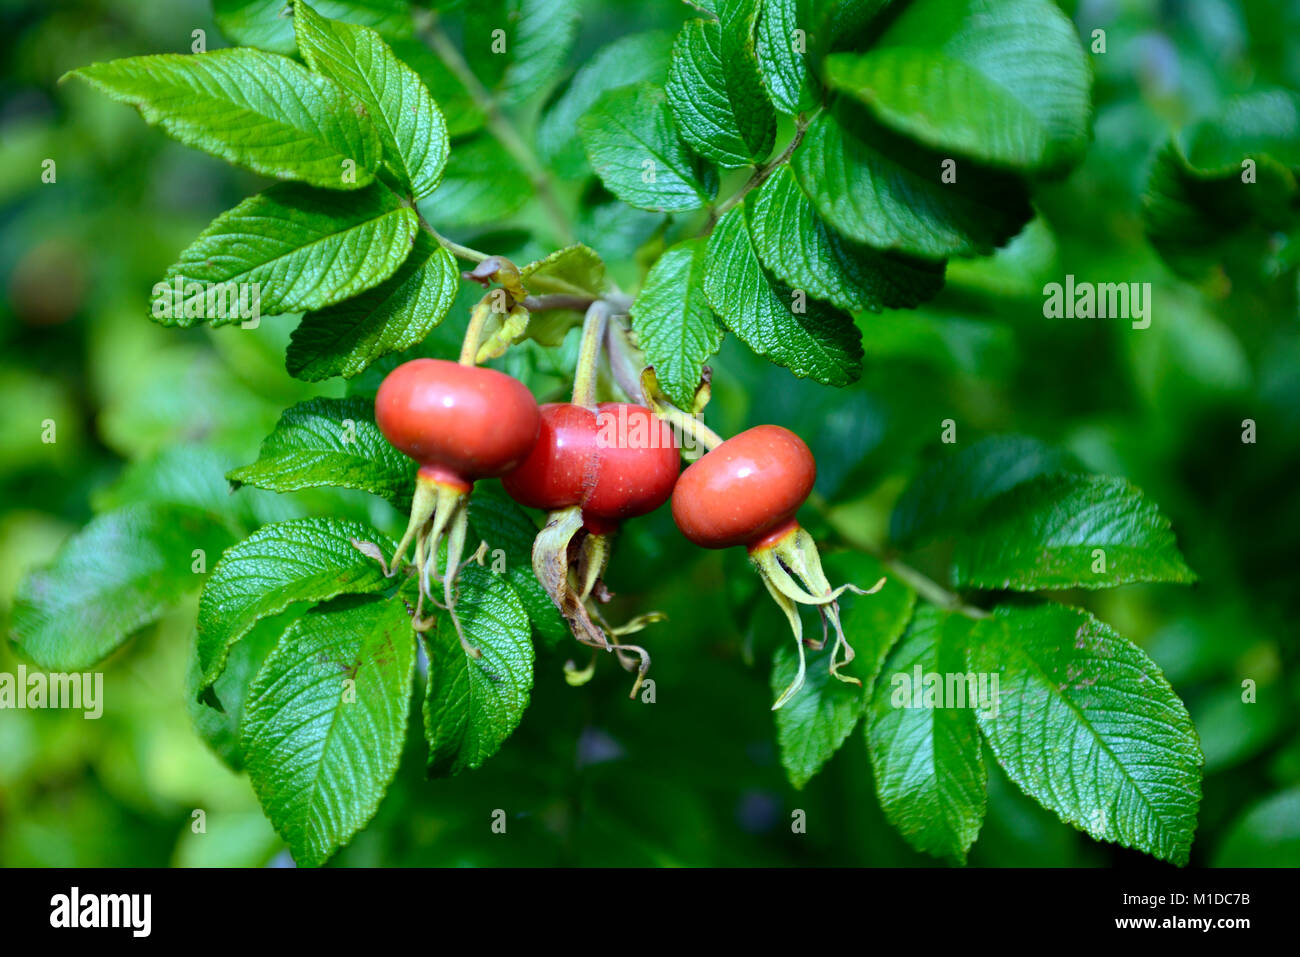 rose hip, rose hips,rose haw, rose hep,rosehips,accessory fruit,red,bright red,fruit,fruits,fruiting body,red,pollinated - Stock Image